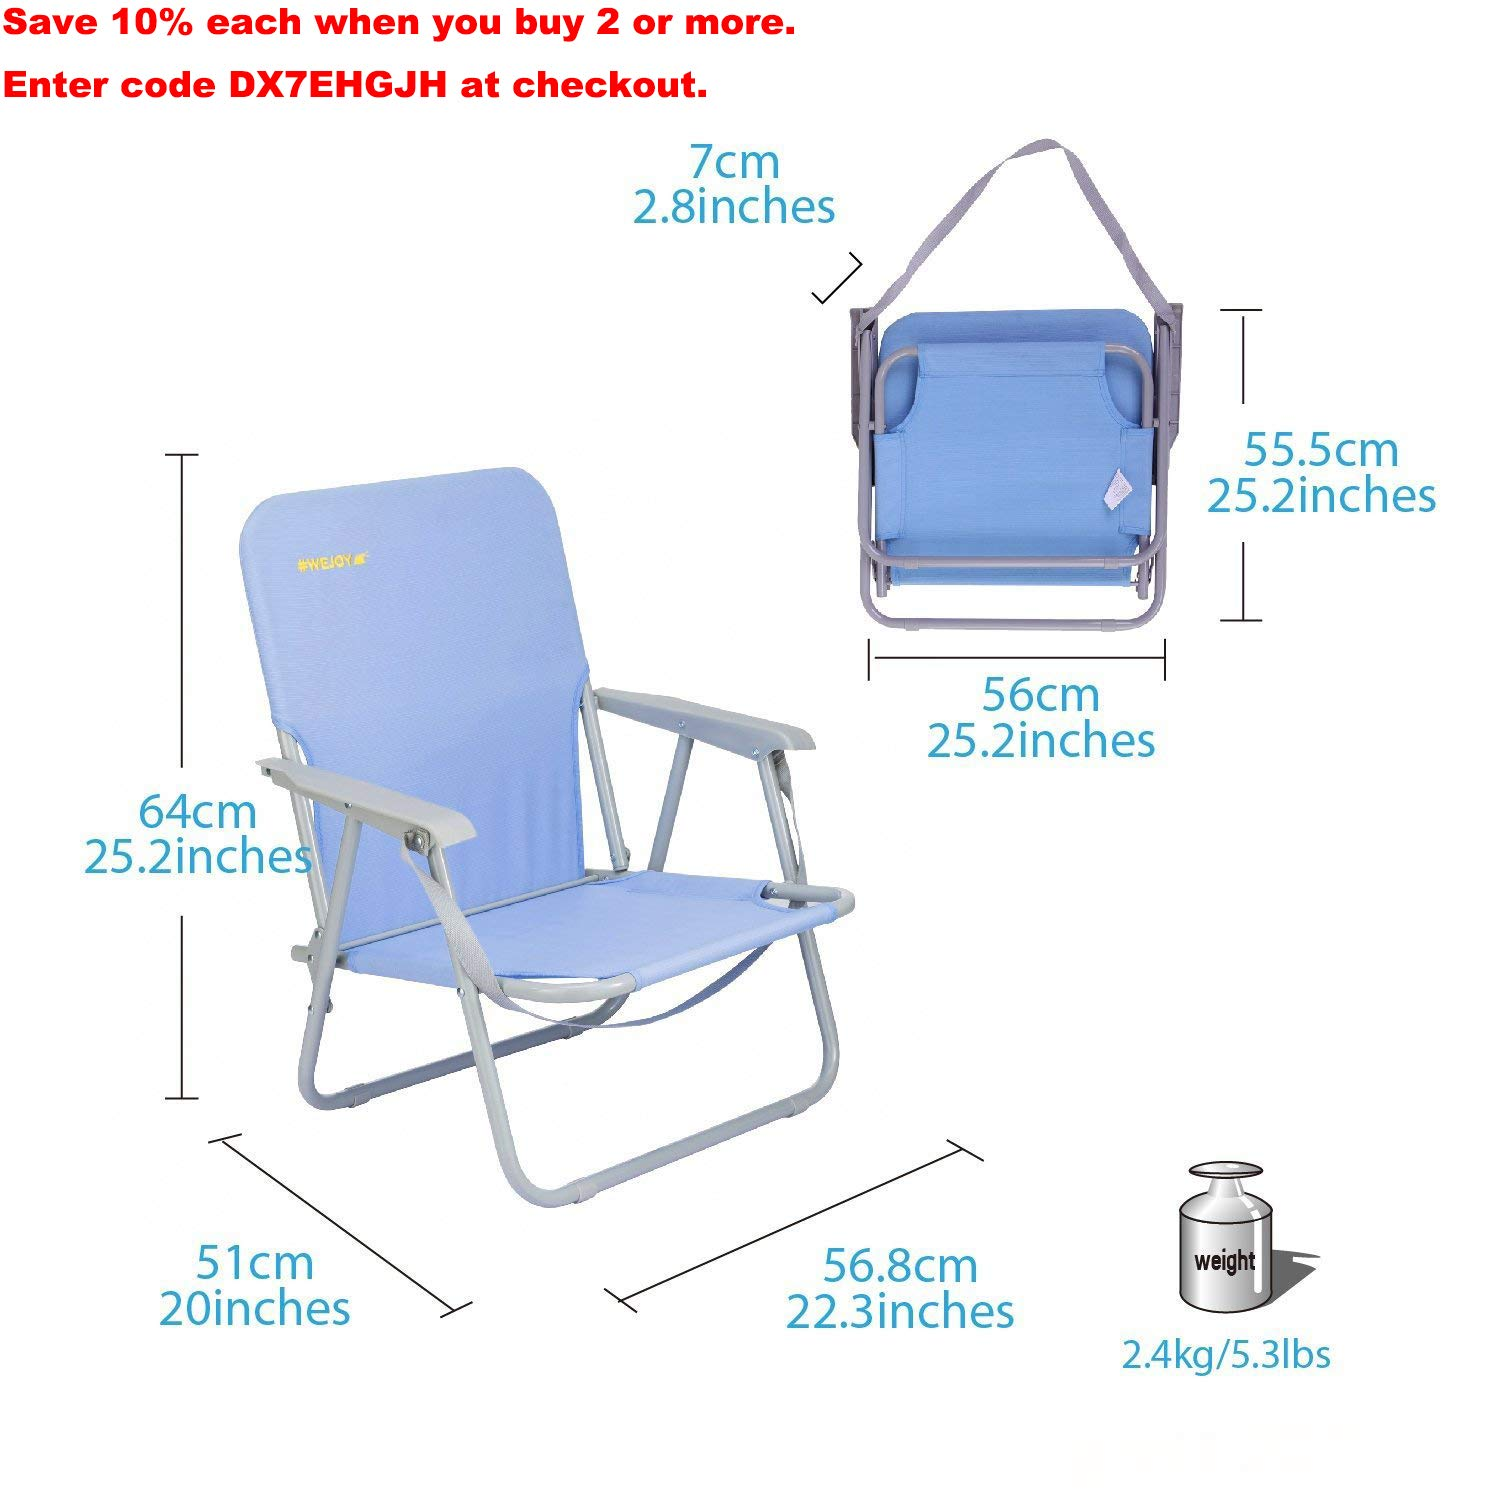 WEJOY Lightweight Portable Folding Outdoor Lawn Camp Beach Chair with Shoulder Strap Pocket, Low High Seat, Blue